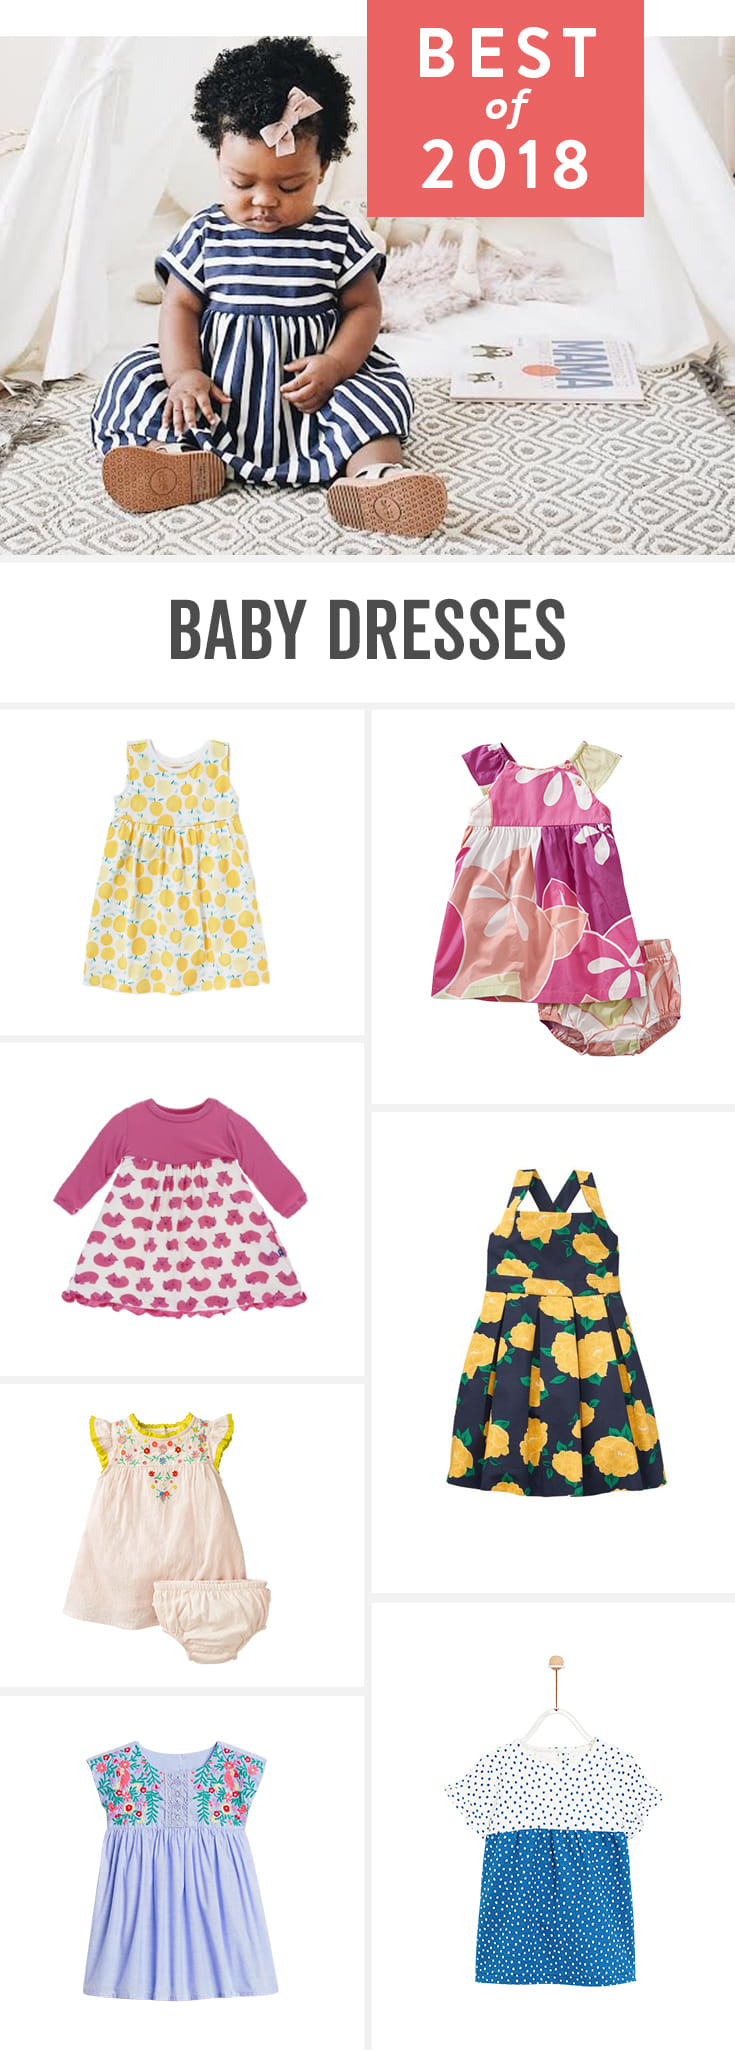 Babylist is the baby registry that lets you add any item from any store including the best baby dresses of this year. Whether you're looking for fancy/formal dresses, or cute dresses for your newborn, these are the perfect classic picks for your registry.